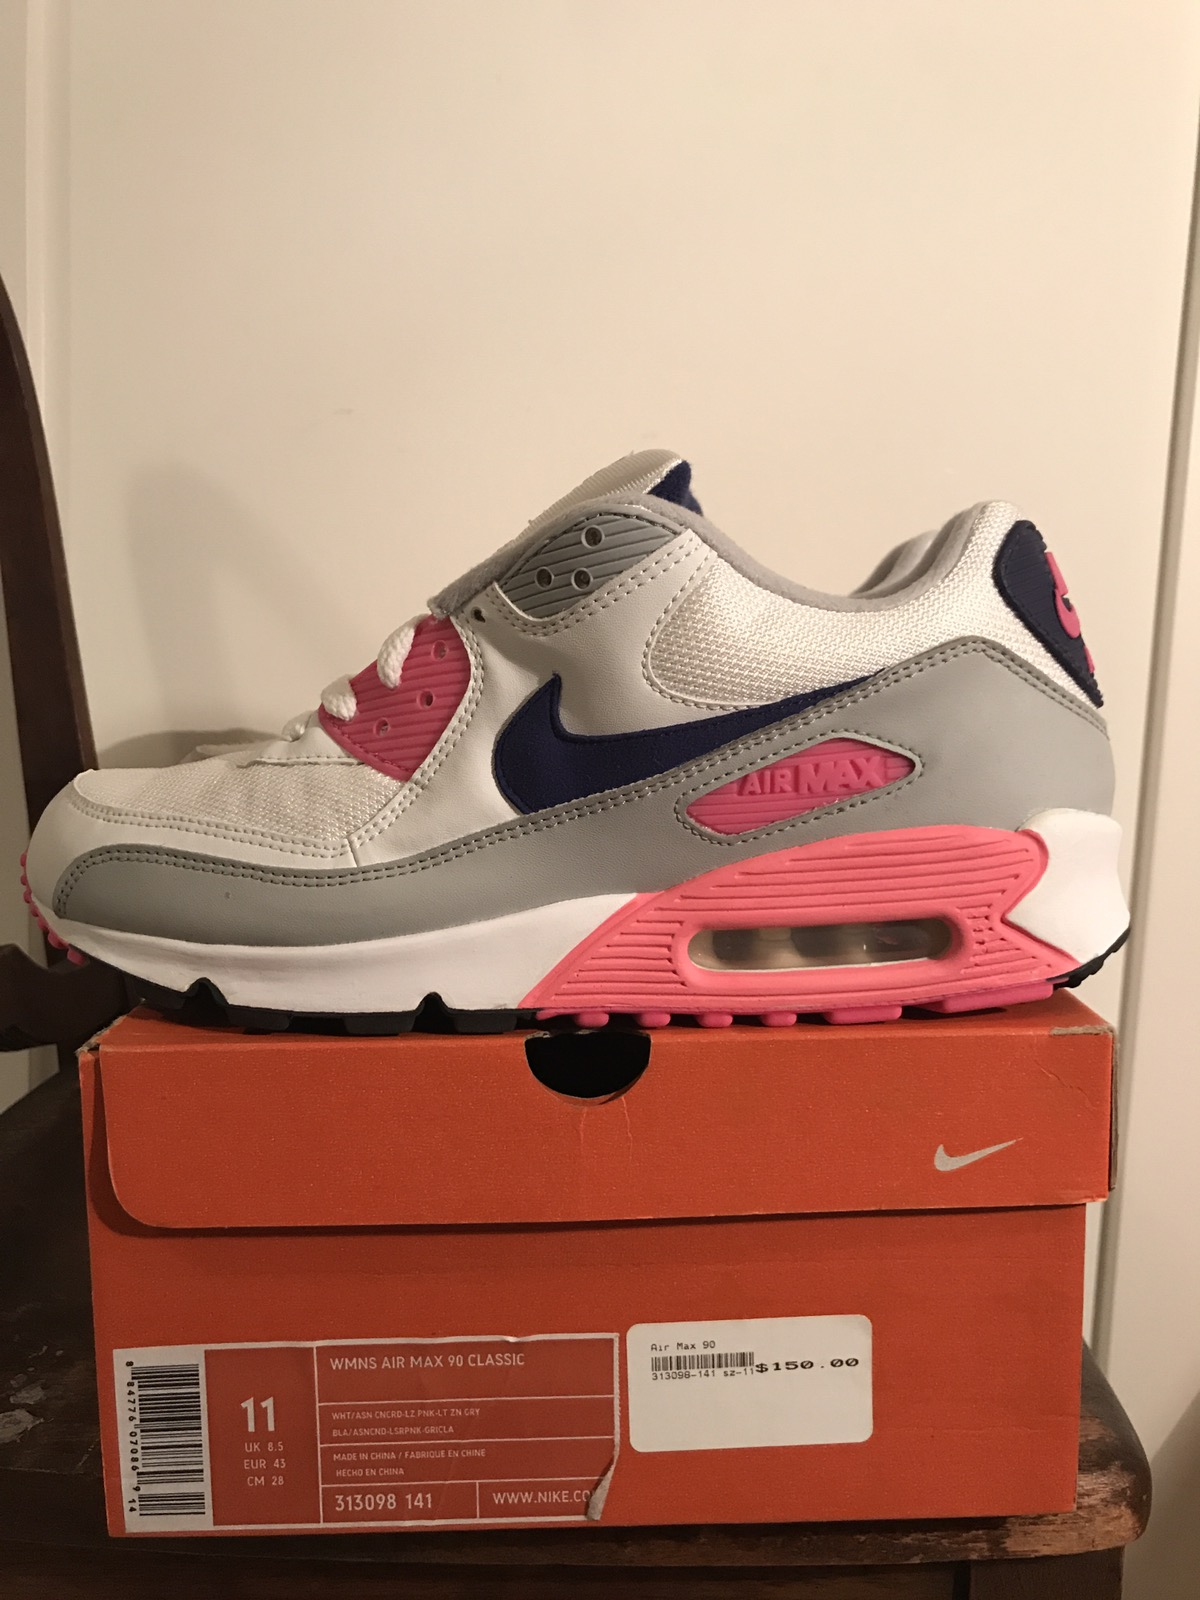 new style cea6c 319d9 Nike Air Max 90 OG WOMENS CW Size 9.5 - Low-Top Sneakers for Sale - Grailed